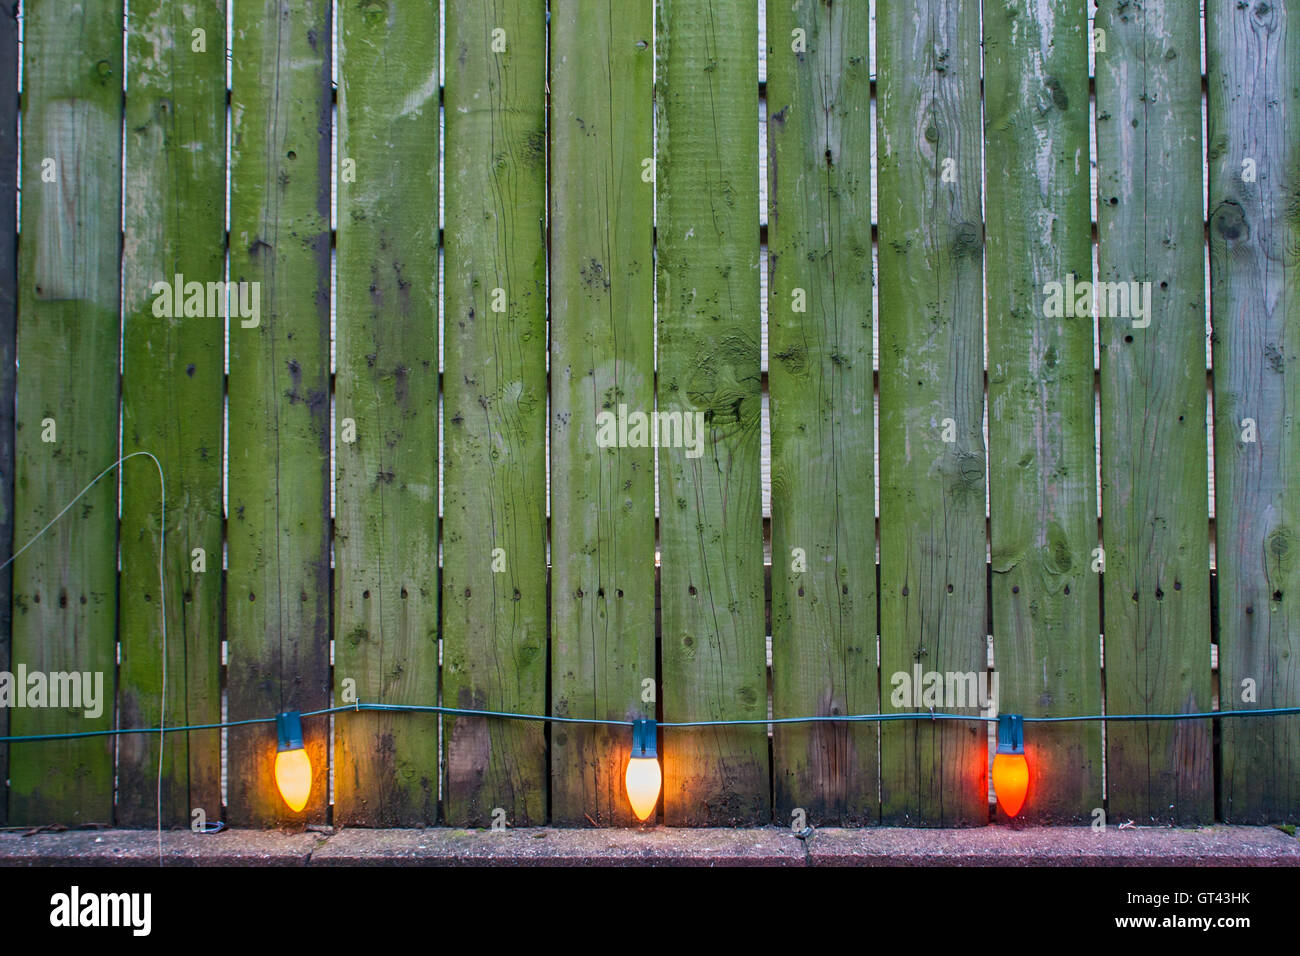 Colorful bulbs by the wooden fence in the backyard Stock Photo